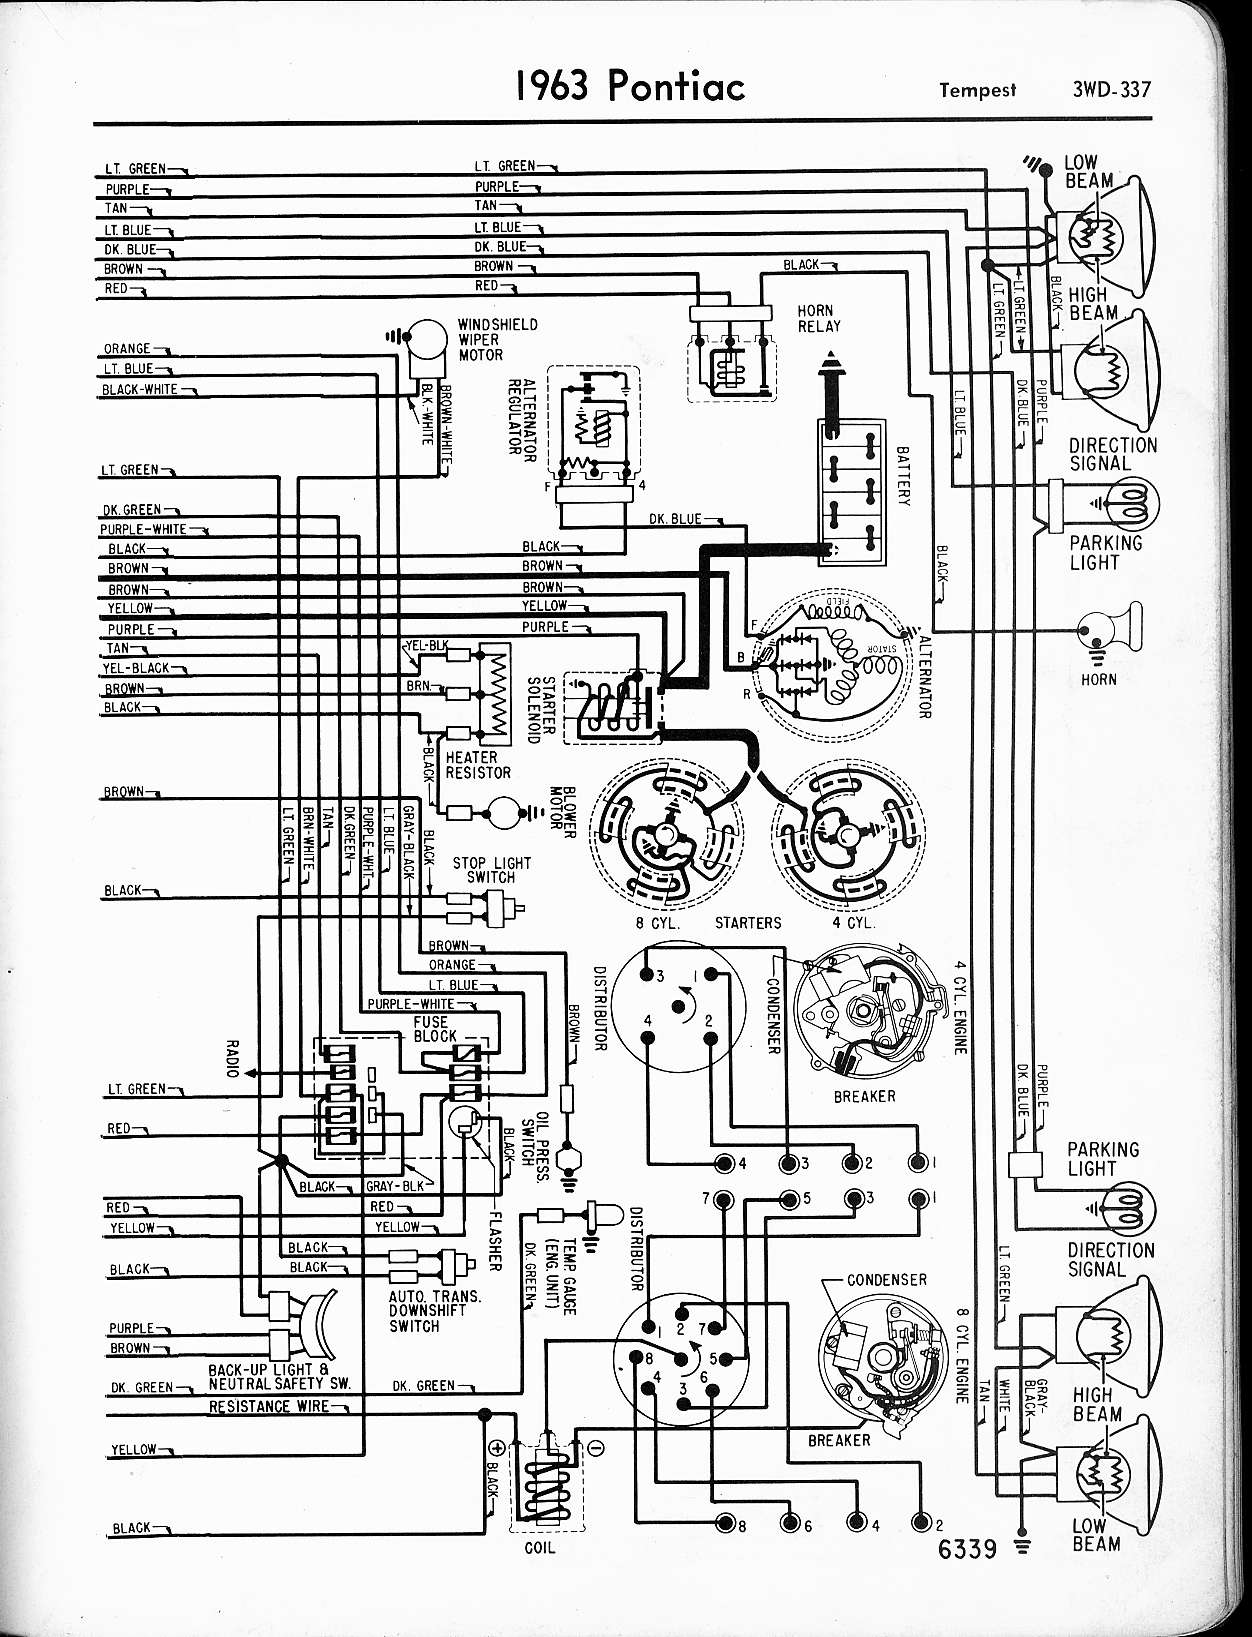 1965 impala ignition wiring diagram online wiring diagram 1974 Corvette Wiring Diagram 1968 chevy impala turn signal wiring diagram wiring schematic diagram 1965